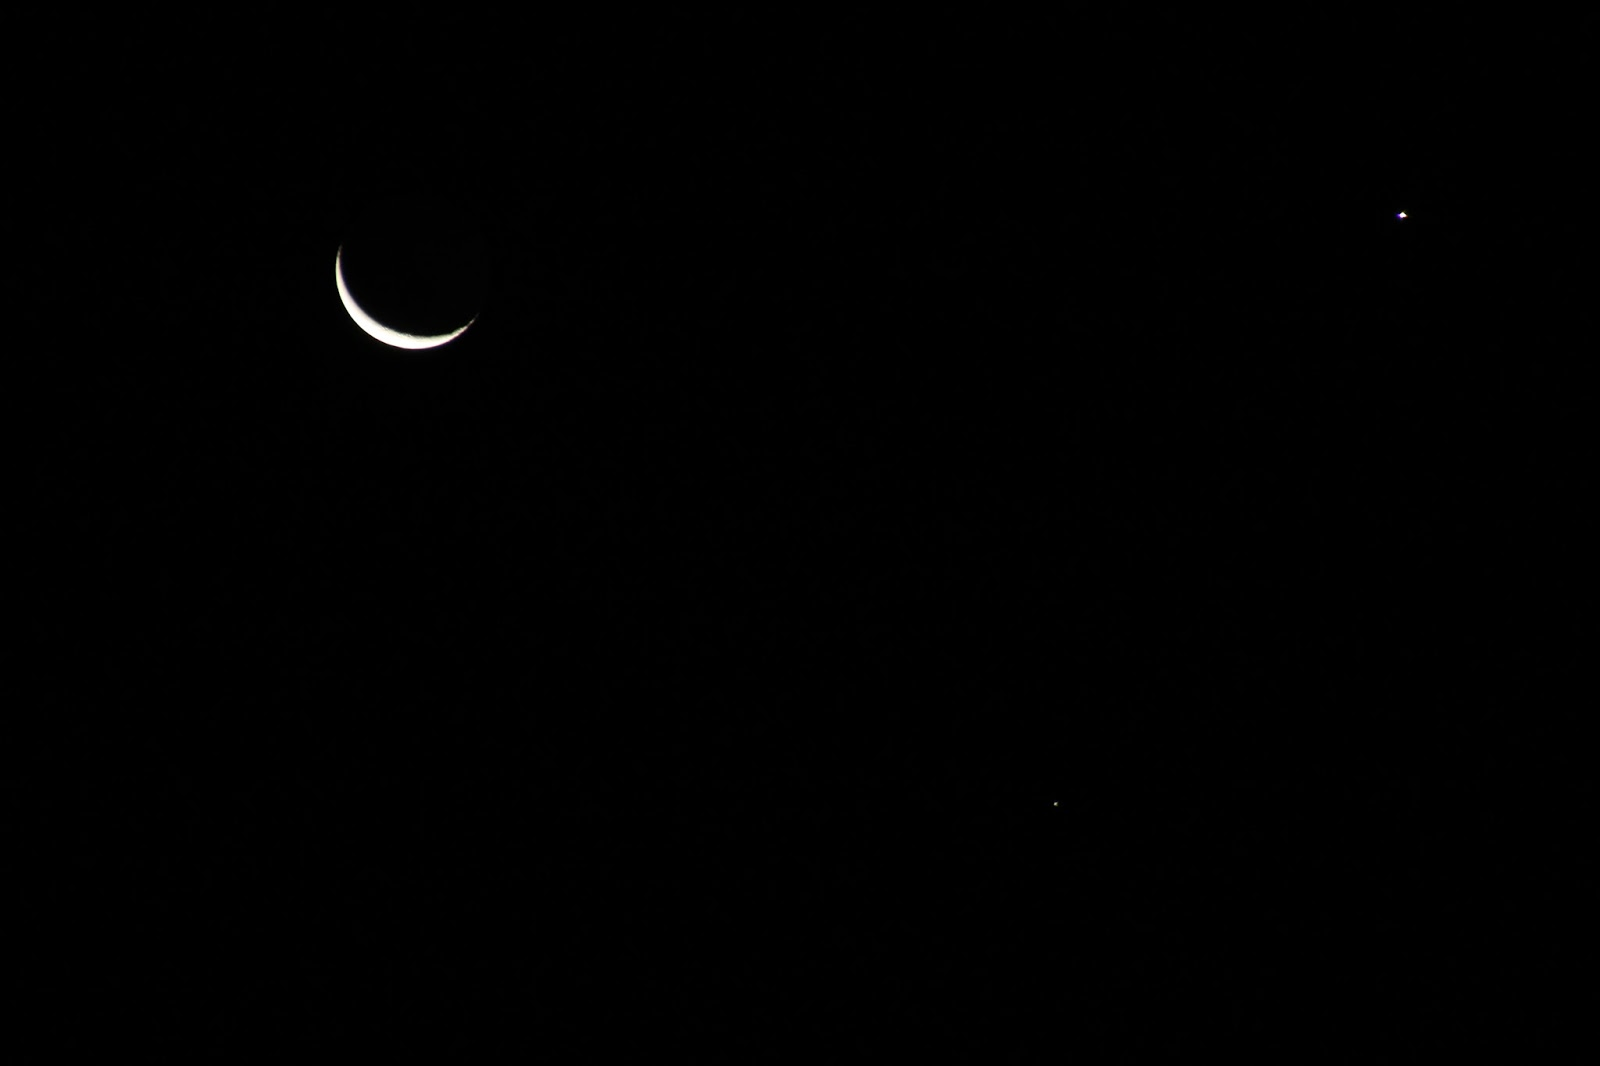 The moon, Venus and Saturn conjunction